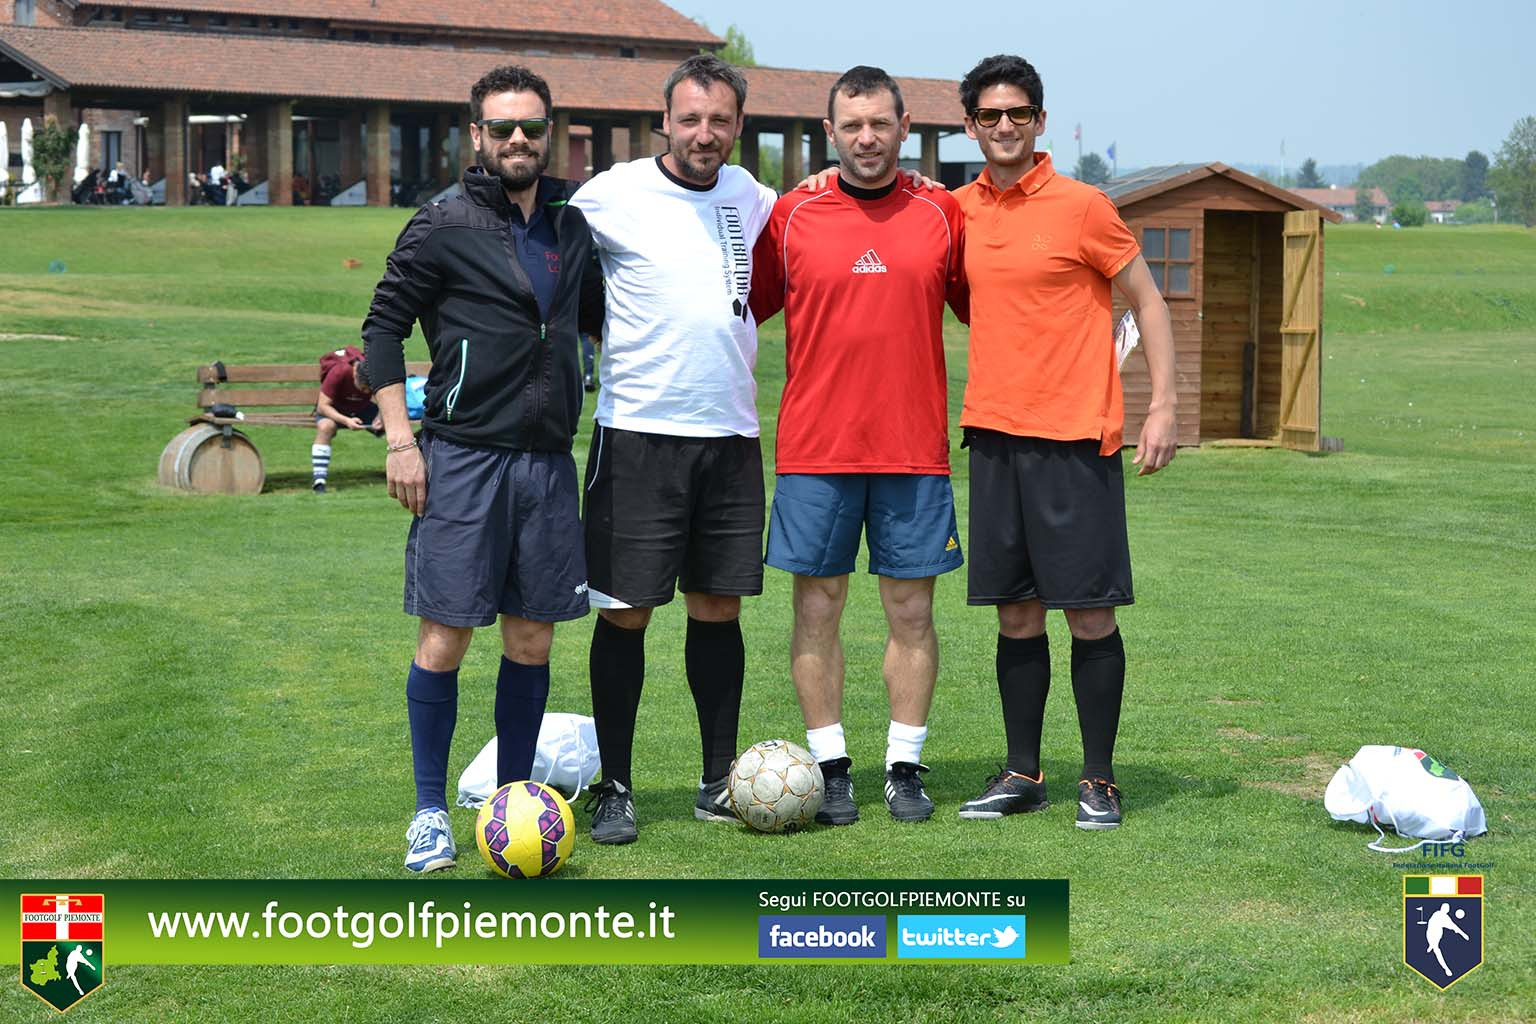 FOTO 9 Regions' Cup Footgolf Piemonte 2016 Golf Città di Asti (At) 30apr16-52